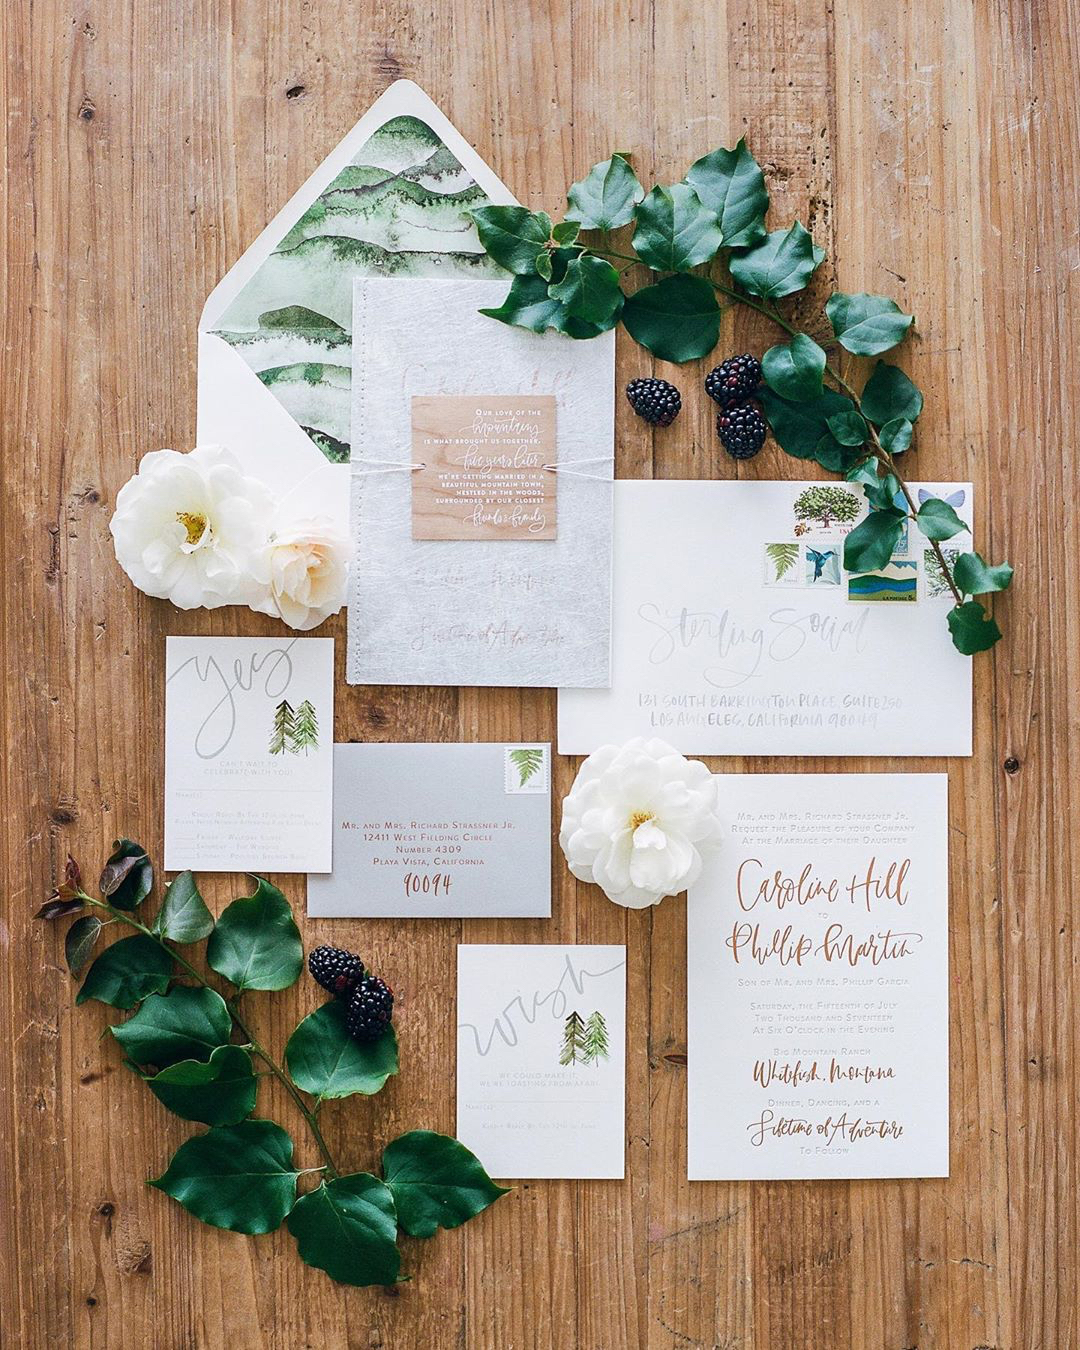 rustic wedding invitations with greenery and creative lettering